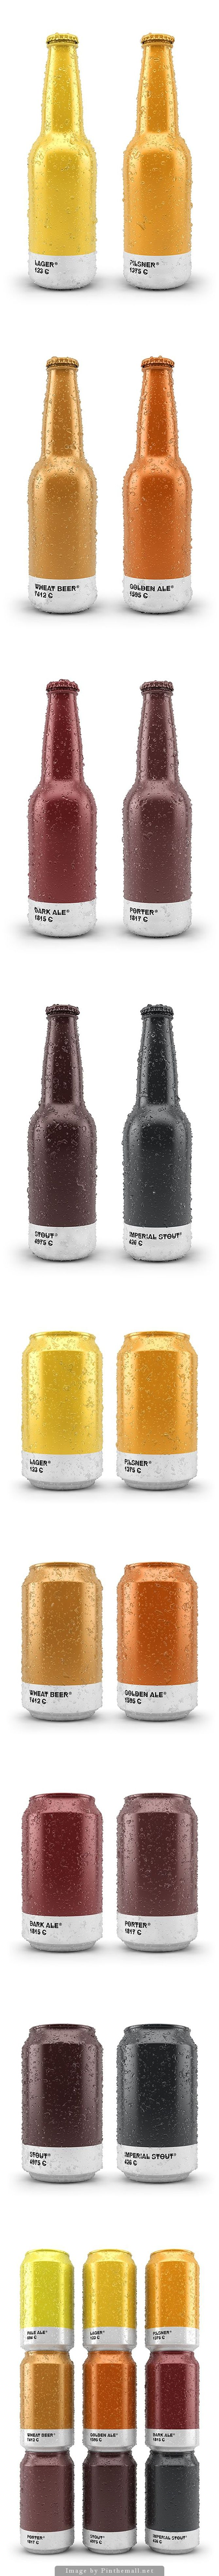 Having these Beer bottles look like Pantone swatches works well based on the shade of beer. Having lighter colors for lighter beers is a very good idea to ket the consumer know the type of beer they will be drinking.